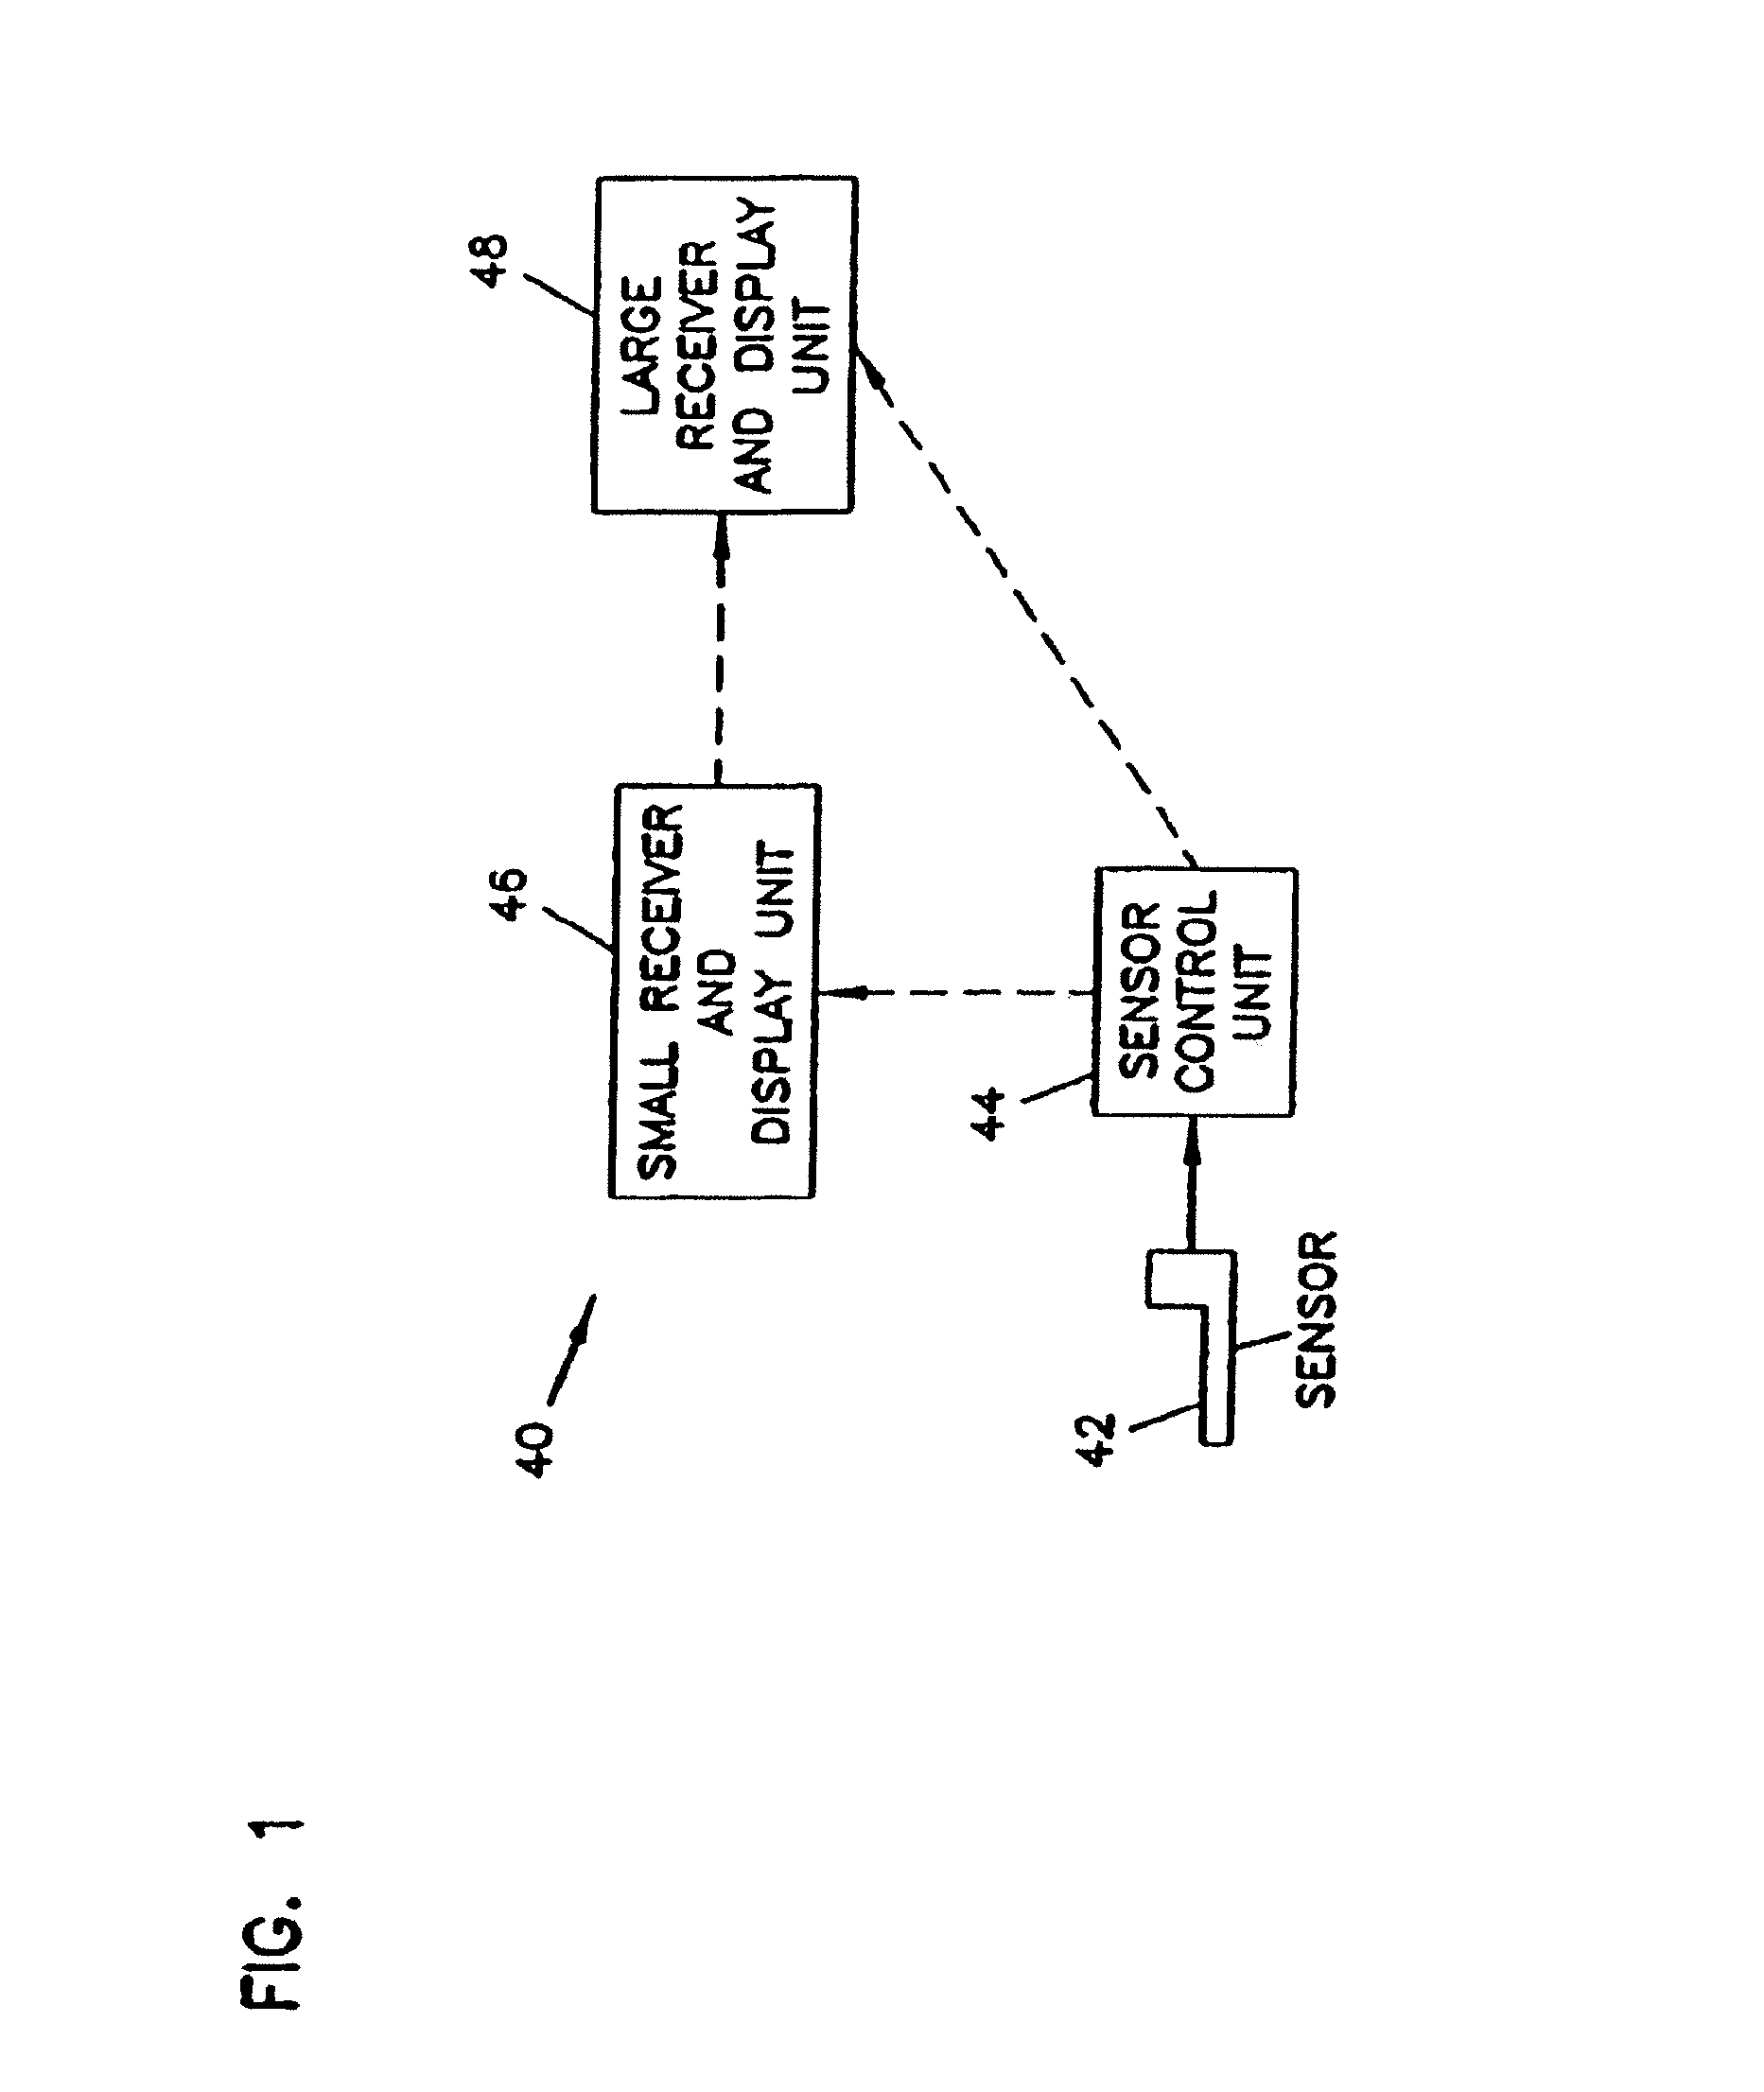 Us8306598b2 Analyte Monitoring Device And Methods Of Use Google Wiring Diagram Further 1950 Packard As Well 1997 Patents